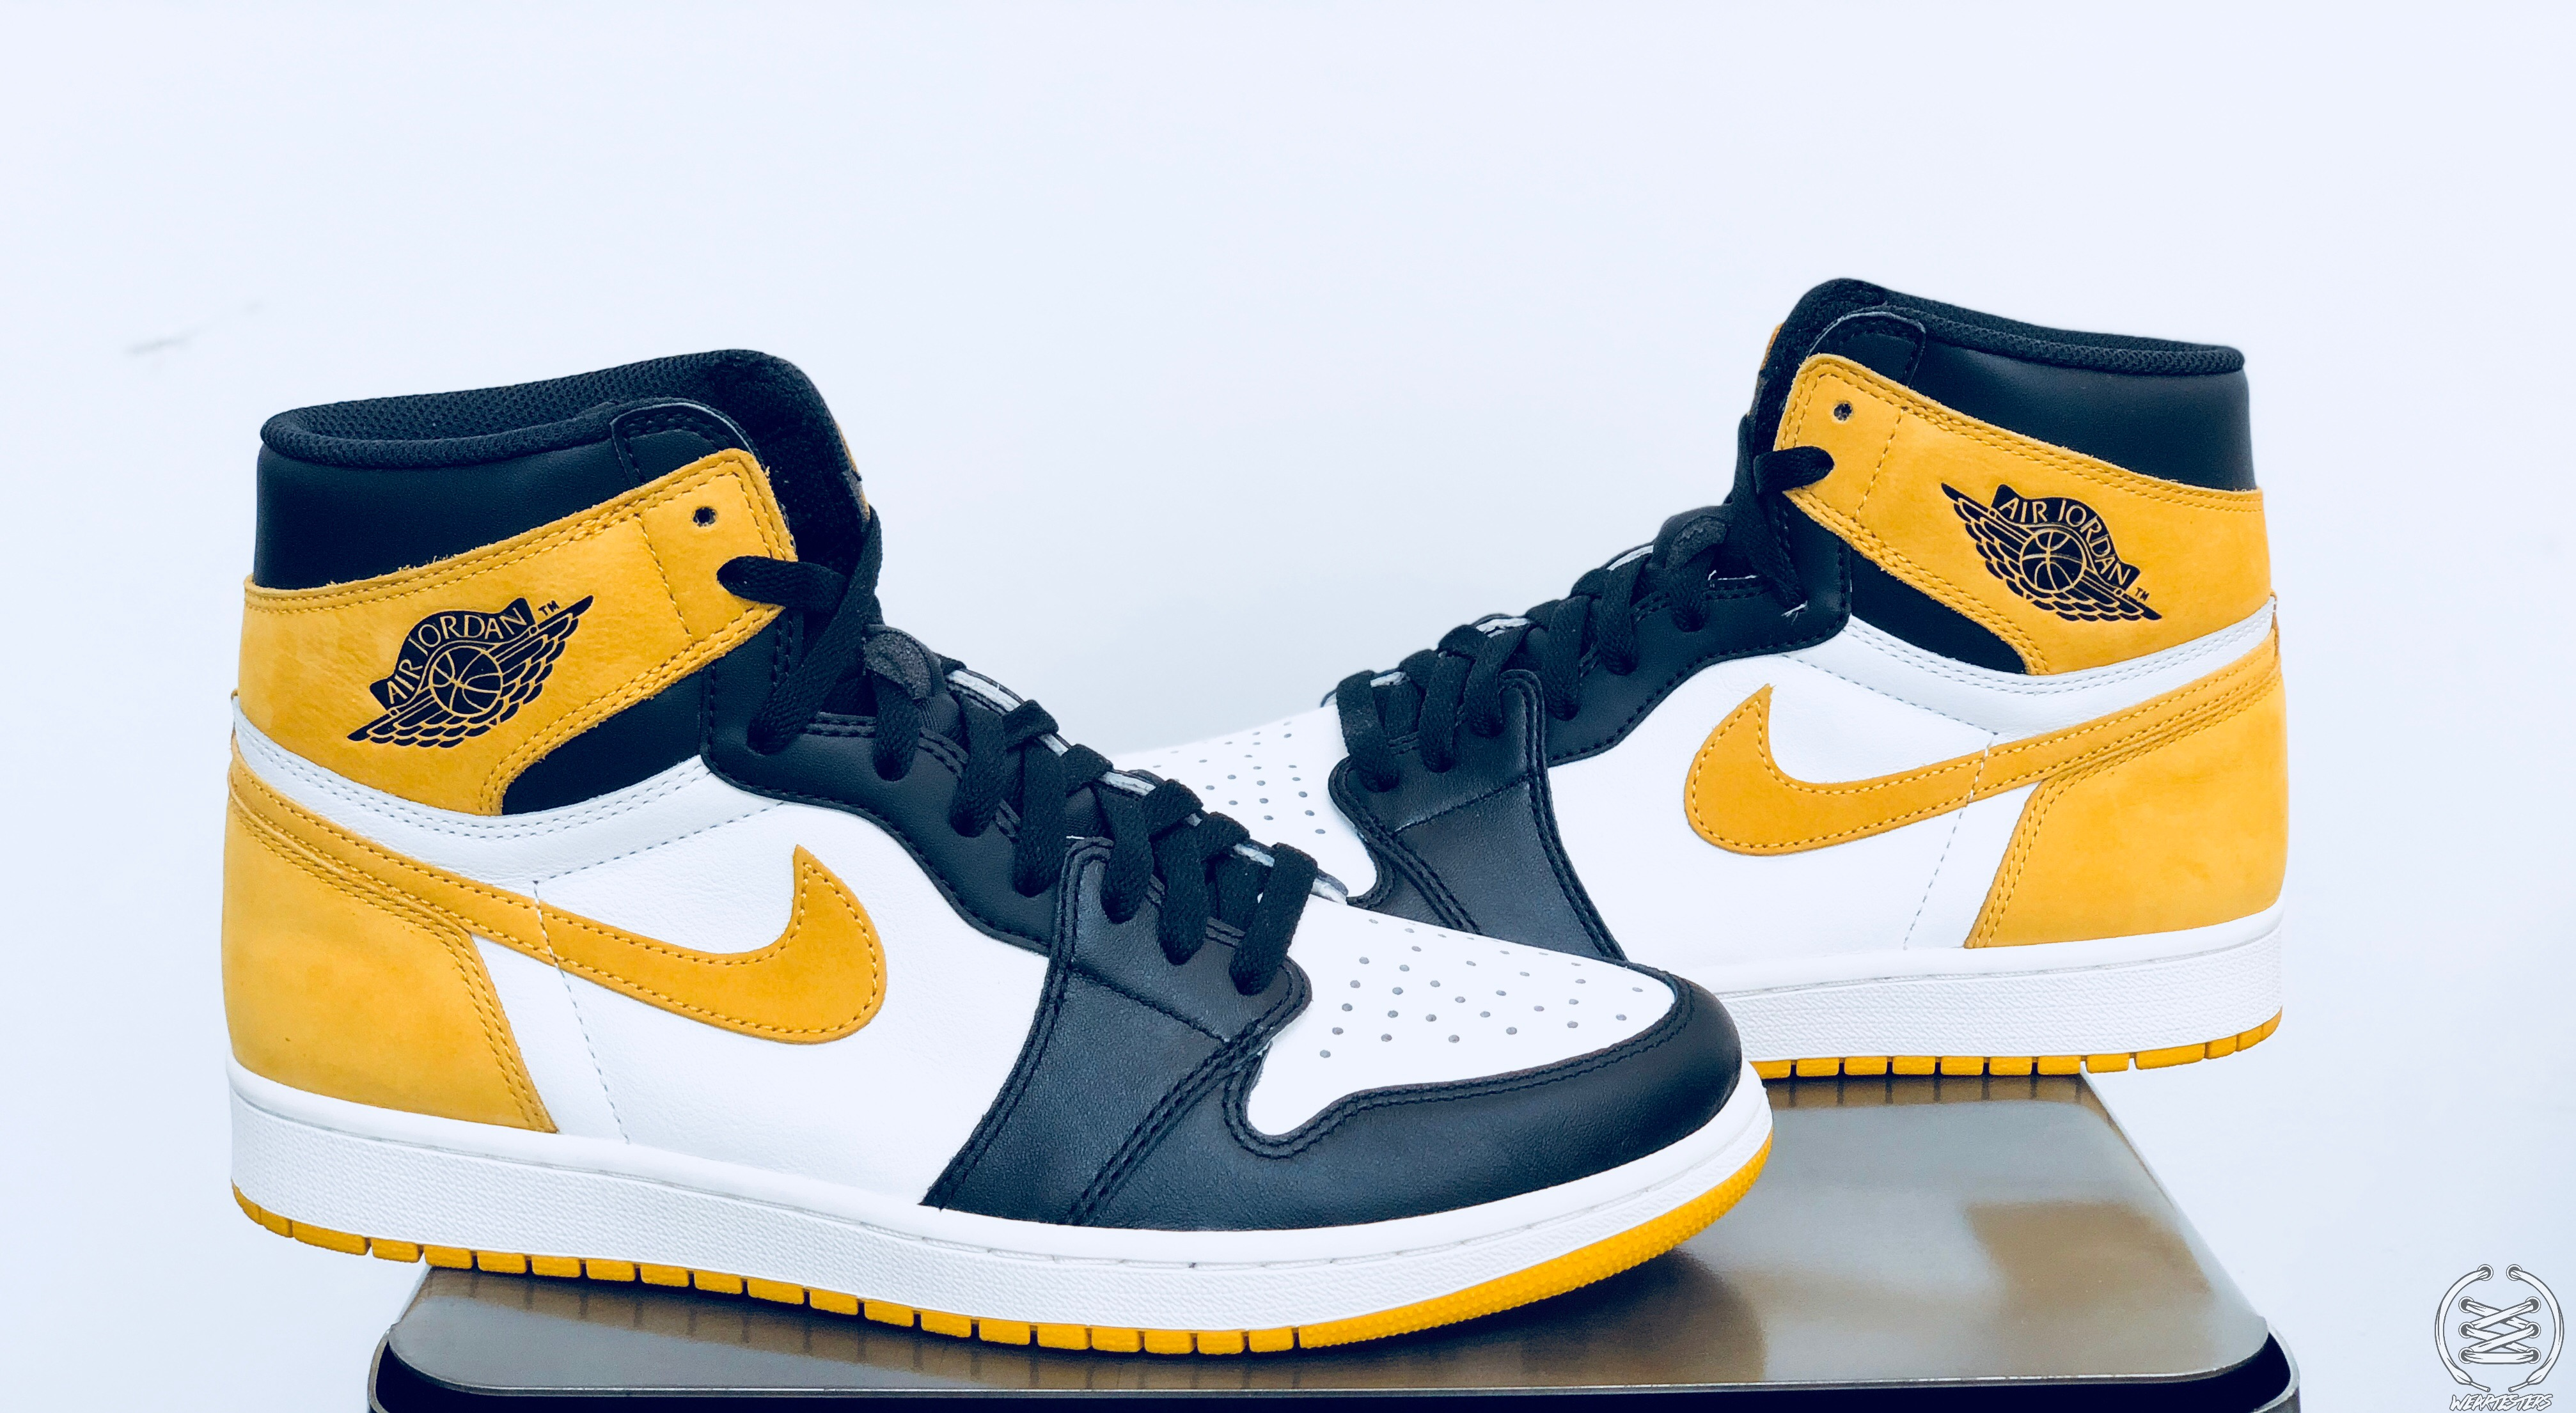 Air Jordan 1 Yellow Ochre Best Hand in the Game collection 2